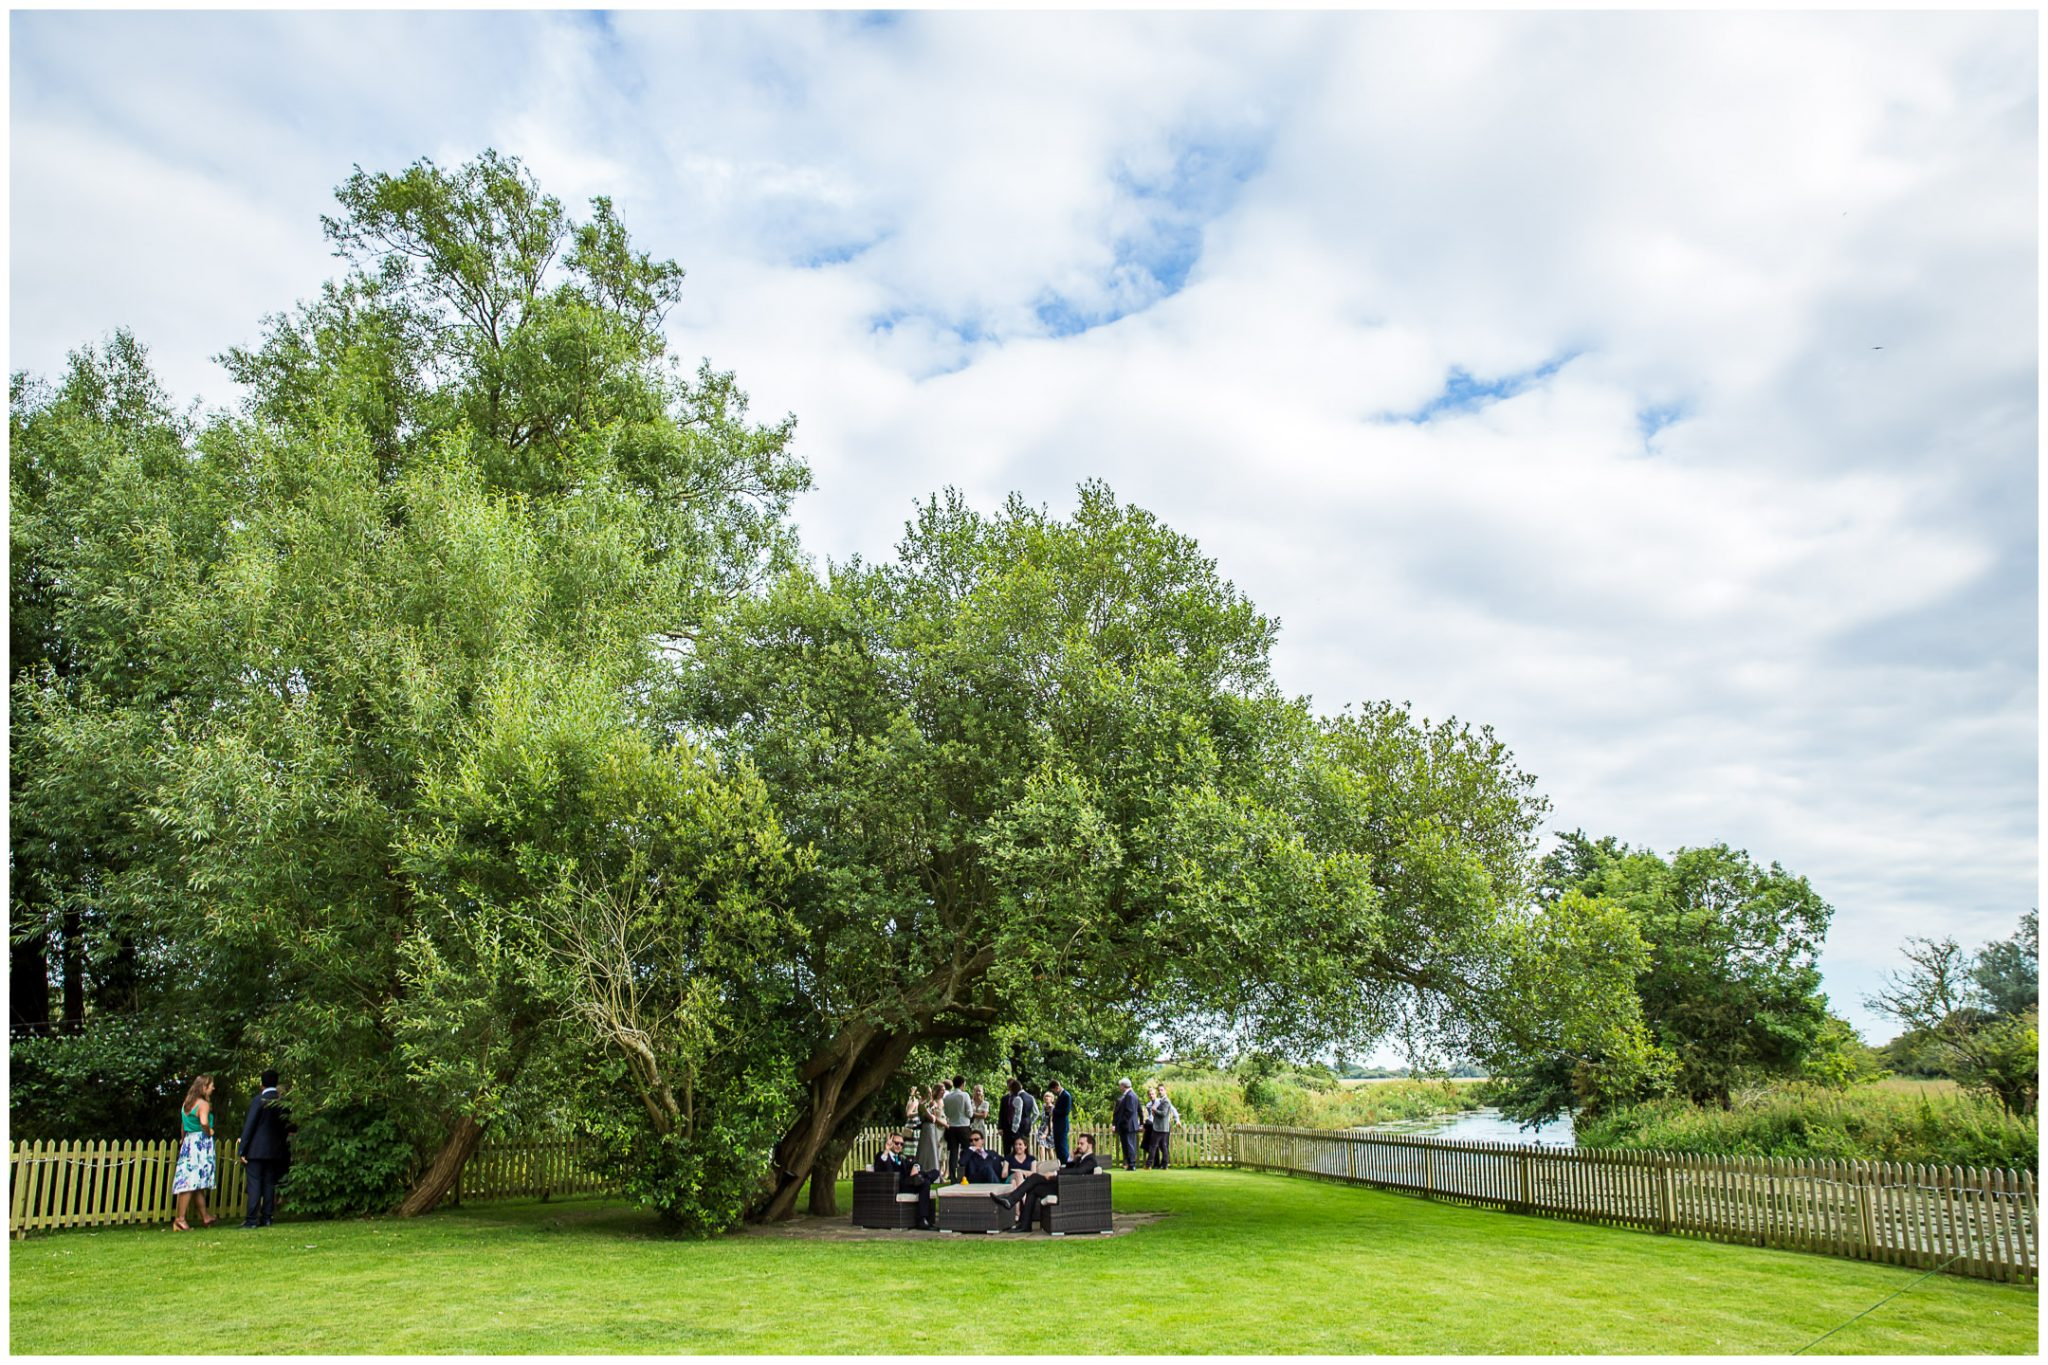 Sopley Mill Summer wedding sitting in the shade of the trees by the river